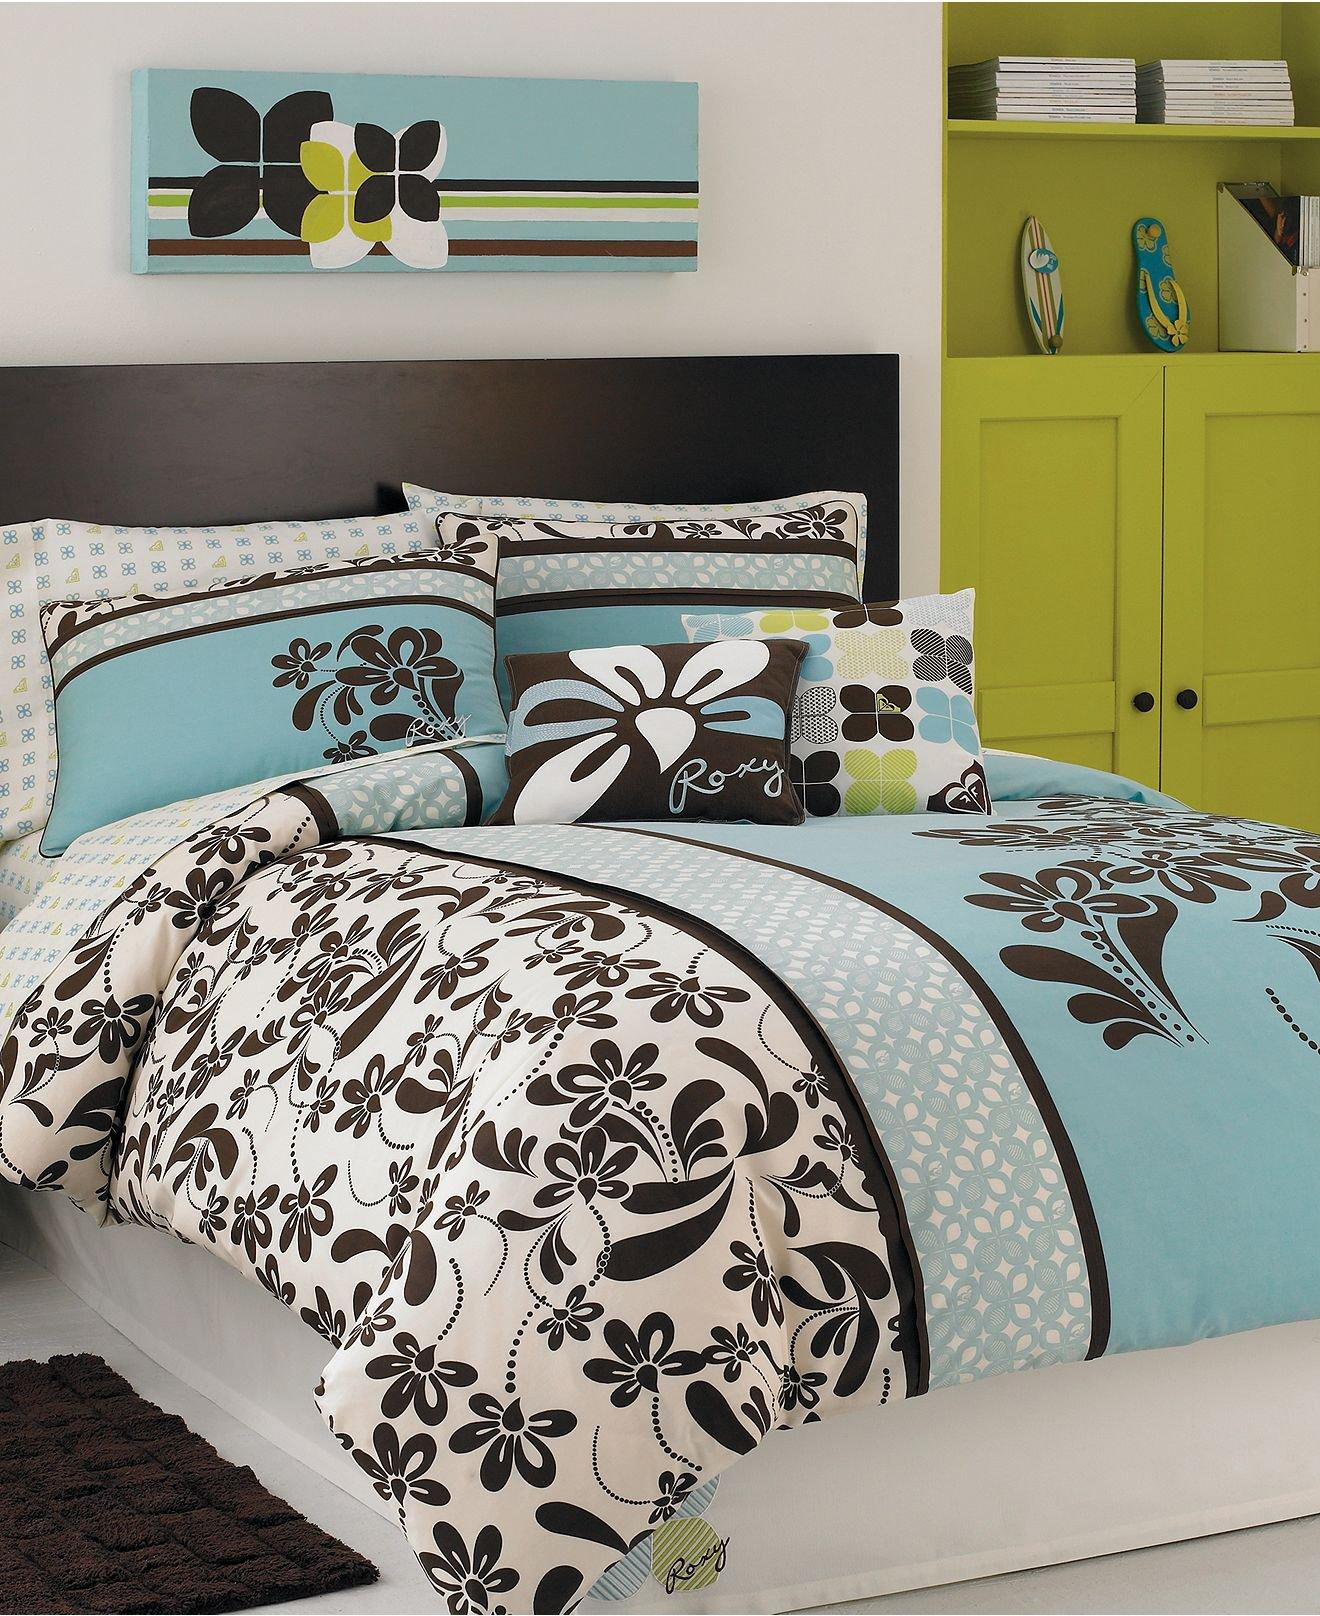 Roxy Bedding Julia Comforter Sets Dorm From Macys Dorm